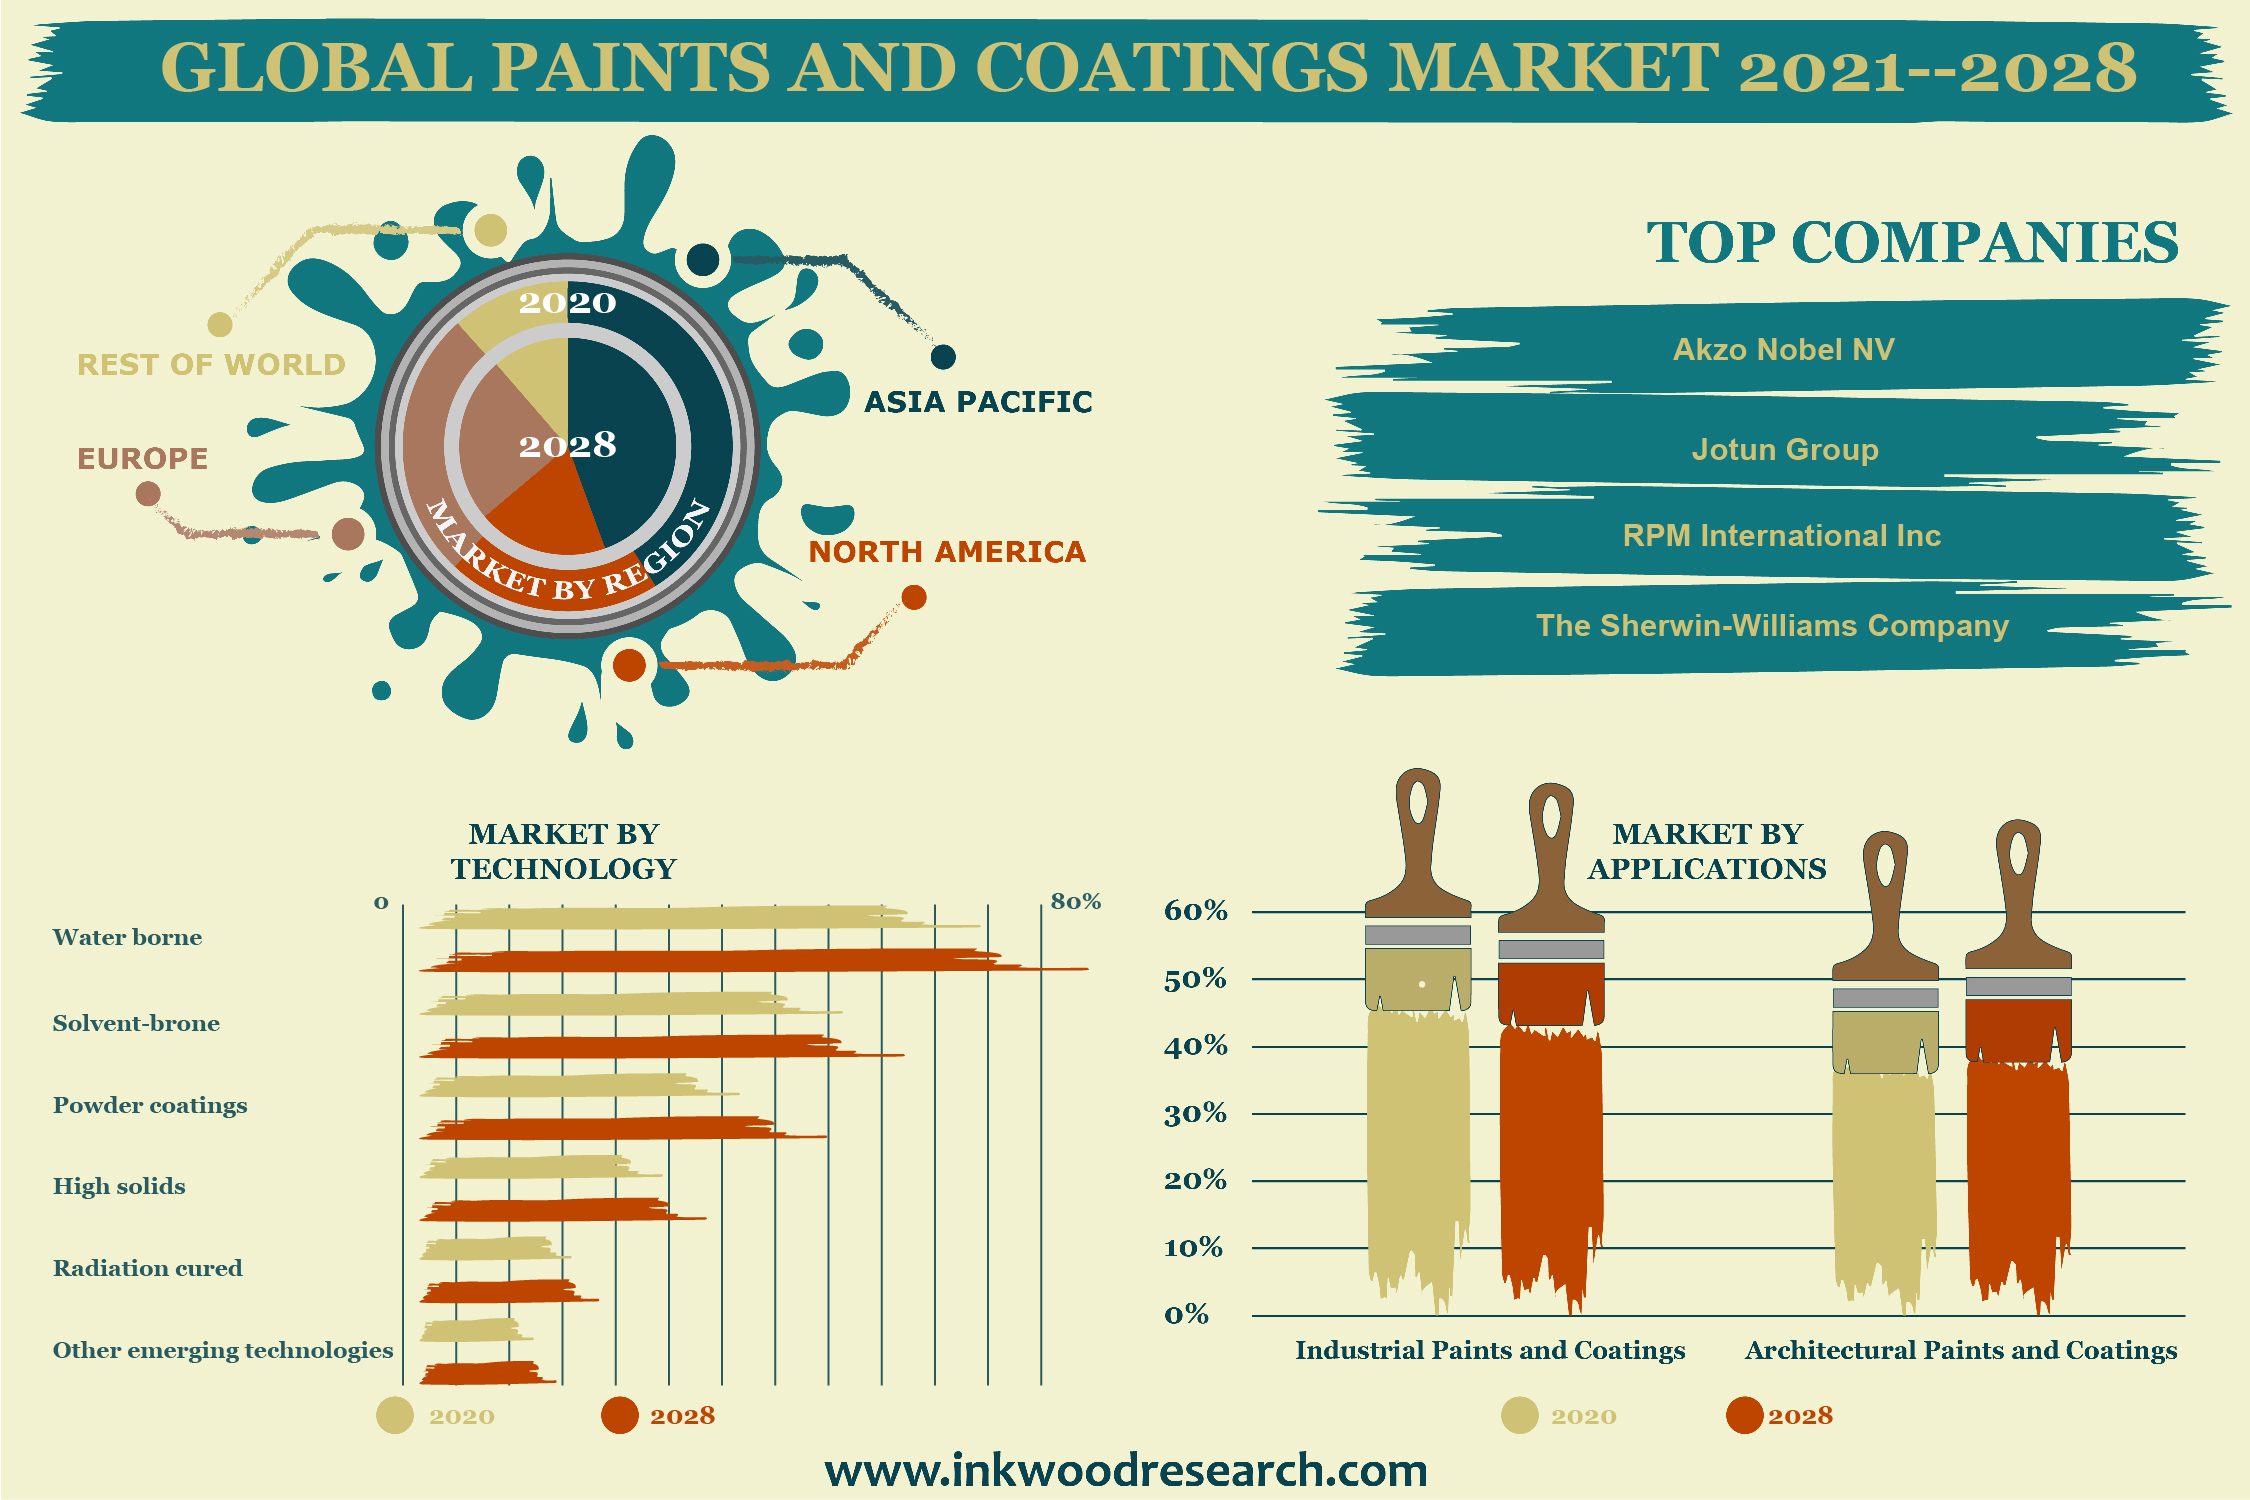 Thriving Construction Sector to propel Growth in the Global Paints & Coatings Market